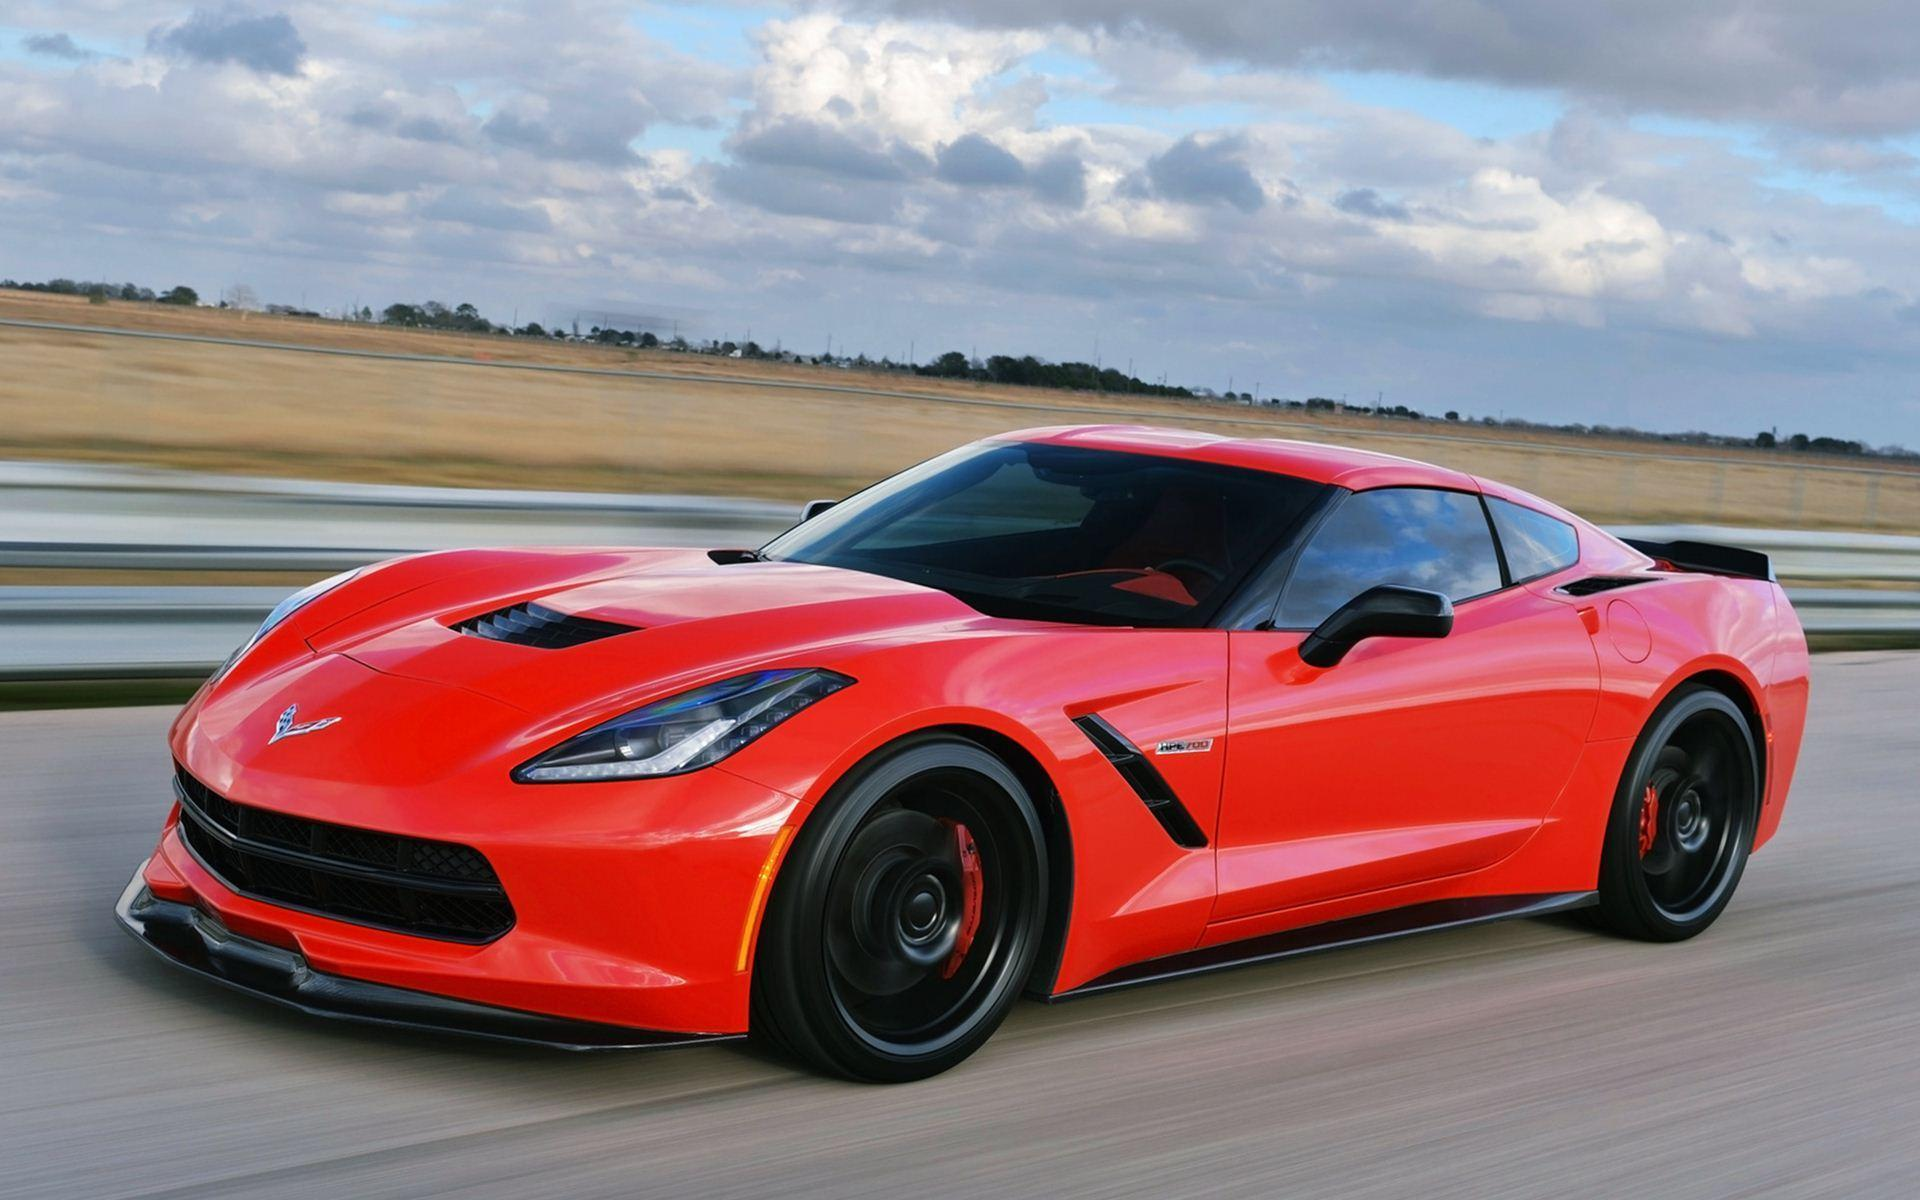 corvette wallpaper hd - photo #18